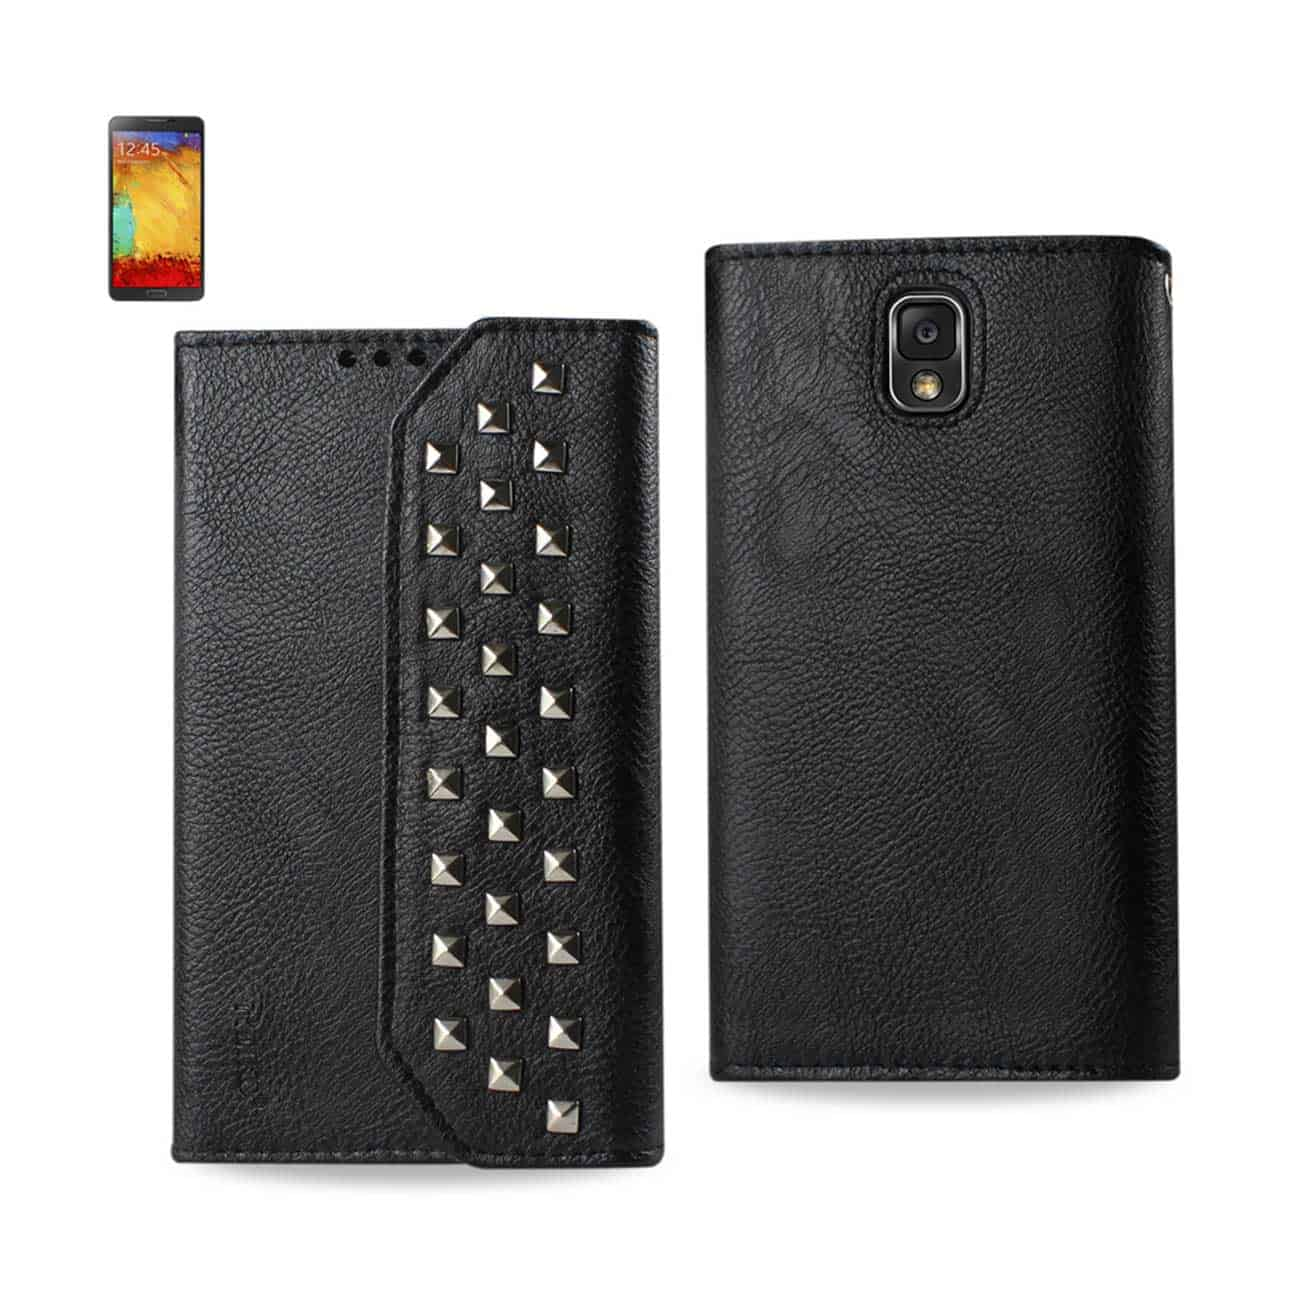 SAMSUNG GALAXY NOTE 3 STUDS WALLET CASE IN BLACK